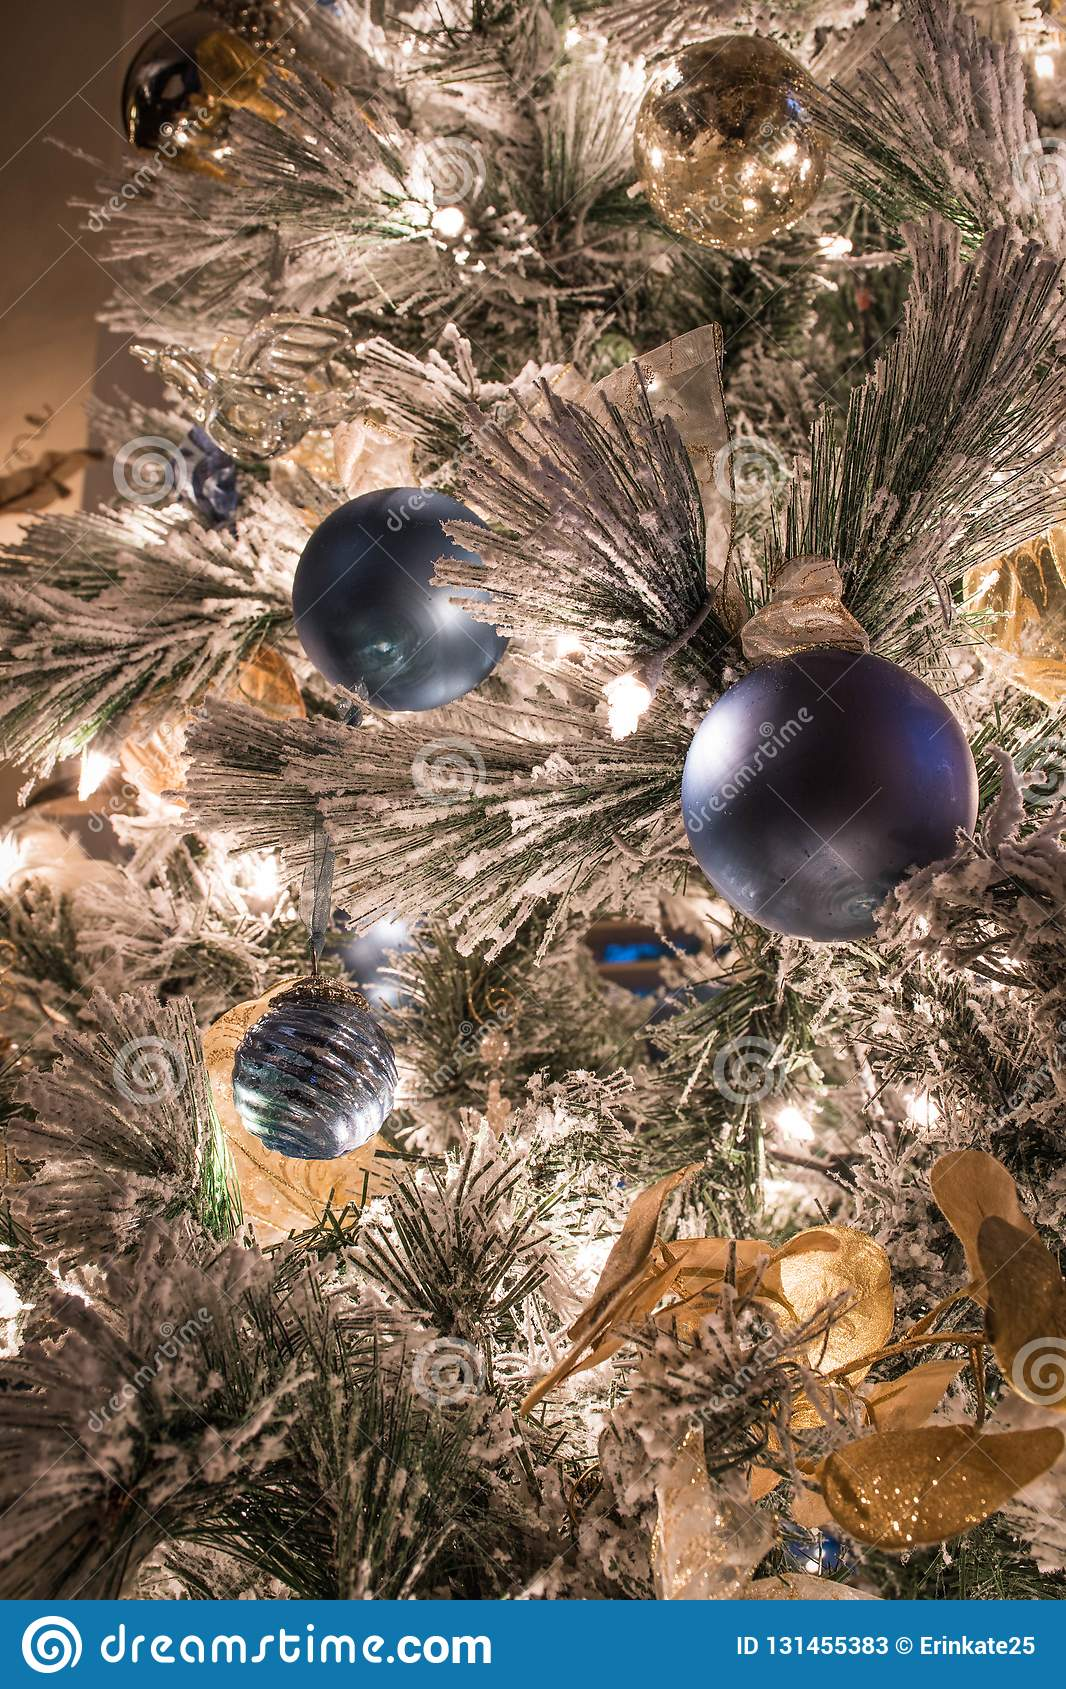 A Variety Of Blue And Gold Christmas Ornaments On A Flocked Christmas Tree Stock Image Image Of Decoration Ball 131455383